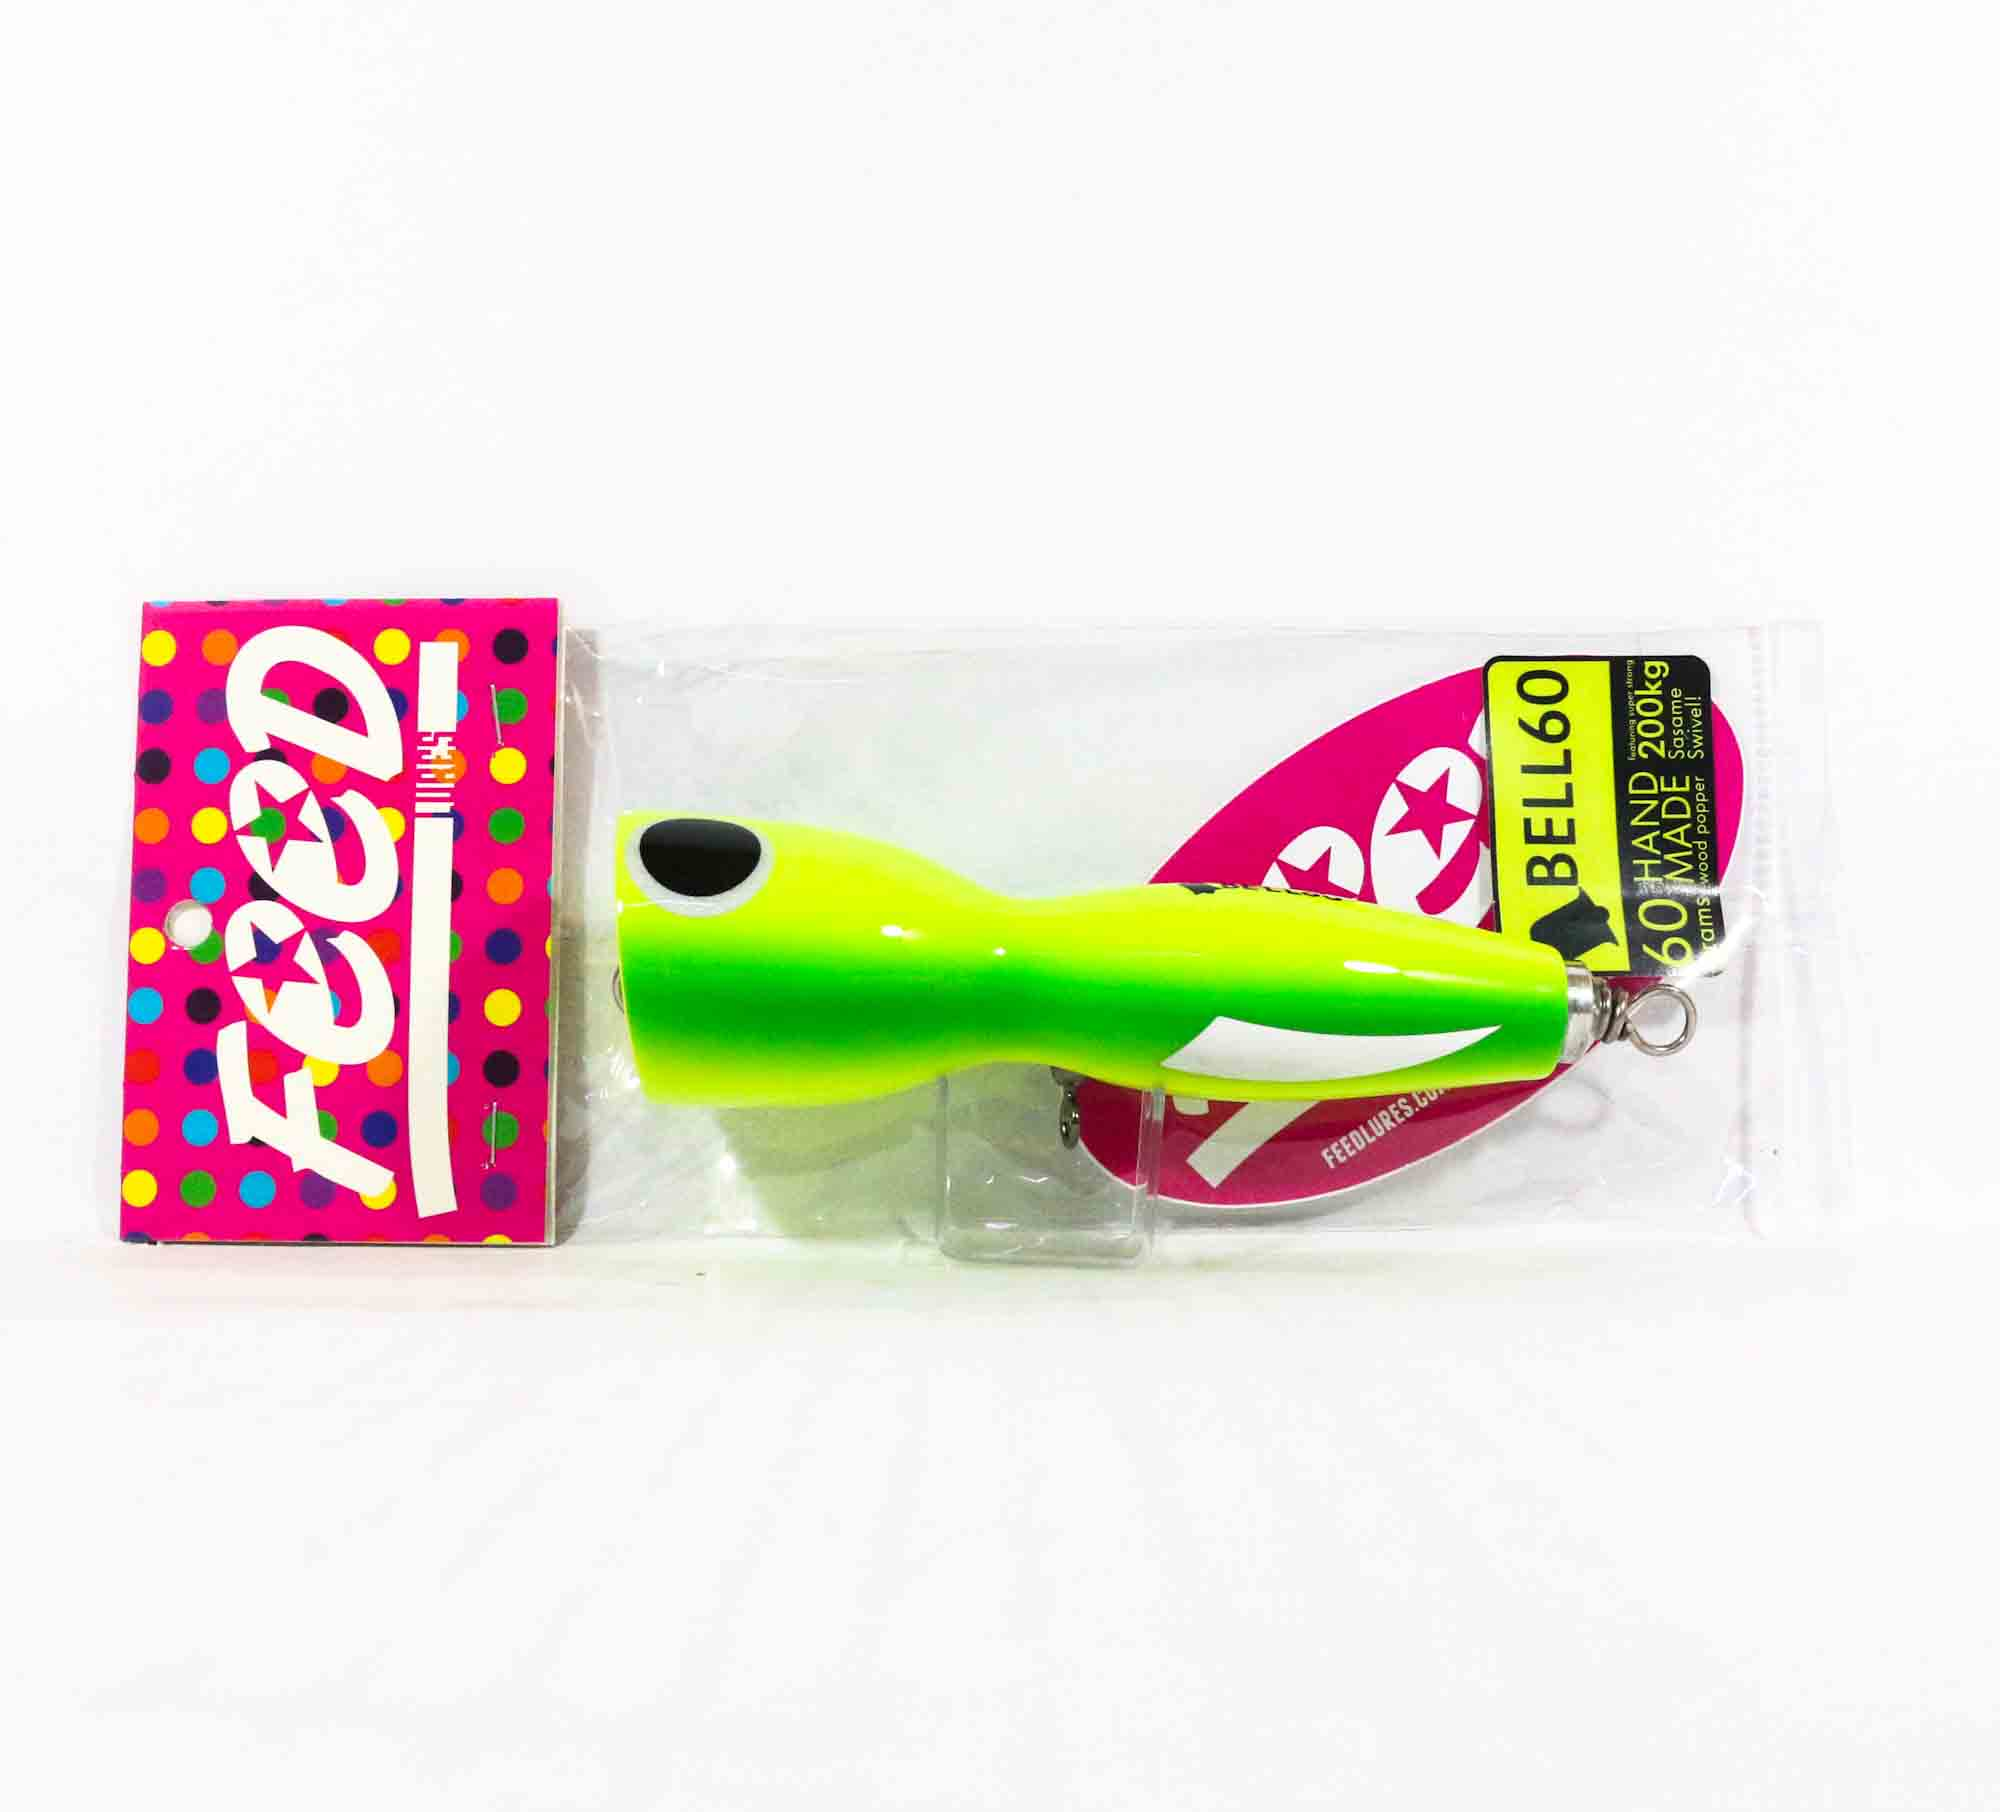 Feed Lures Bell 60 Hand Made Wood Popper Floating Lure 60 grams 60 (7060)